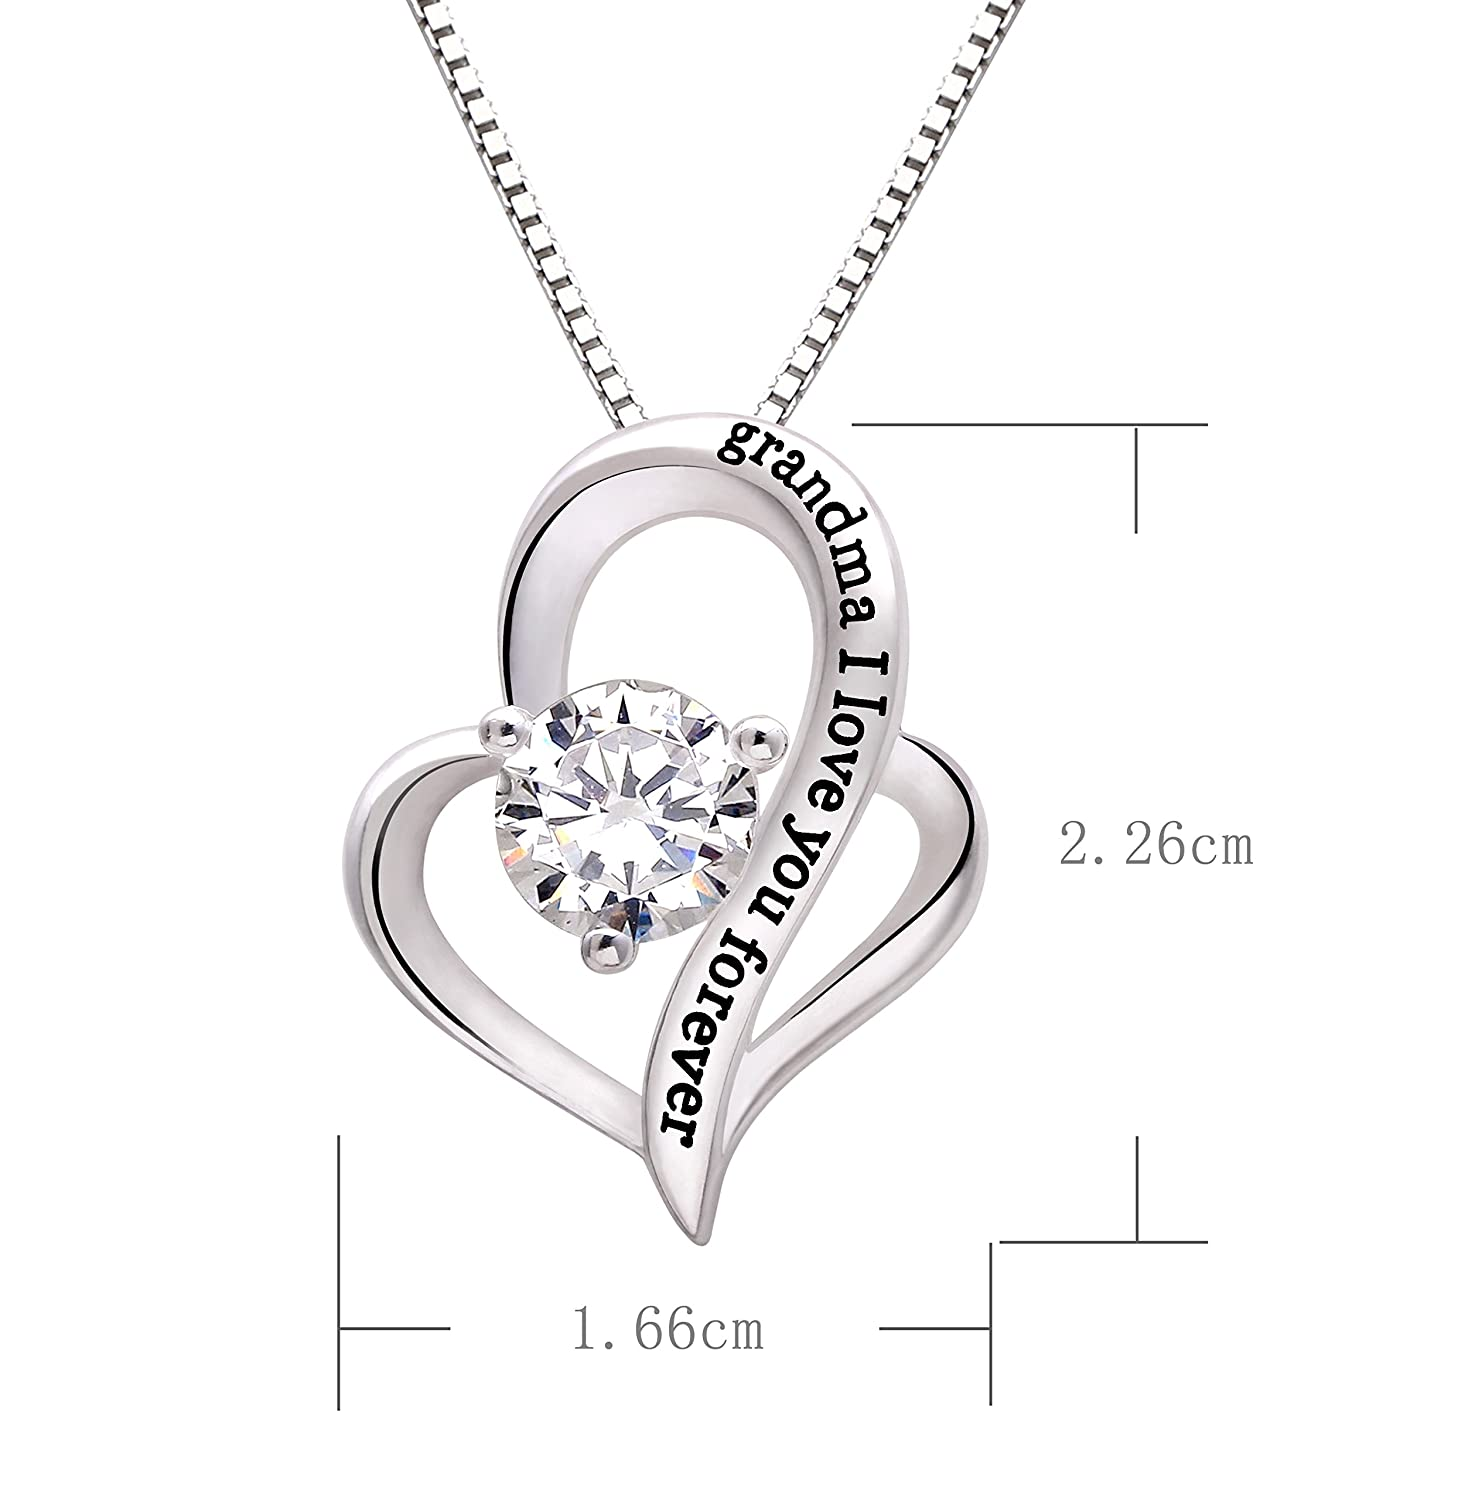 ALOV Jewelry Sterling Silver Grandma I Love You Forever Love Heart Cubic Zirconia Pendant Necklace